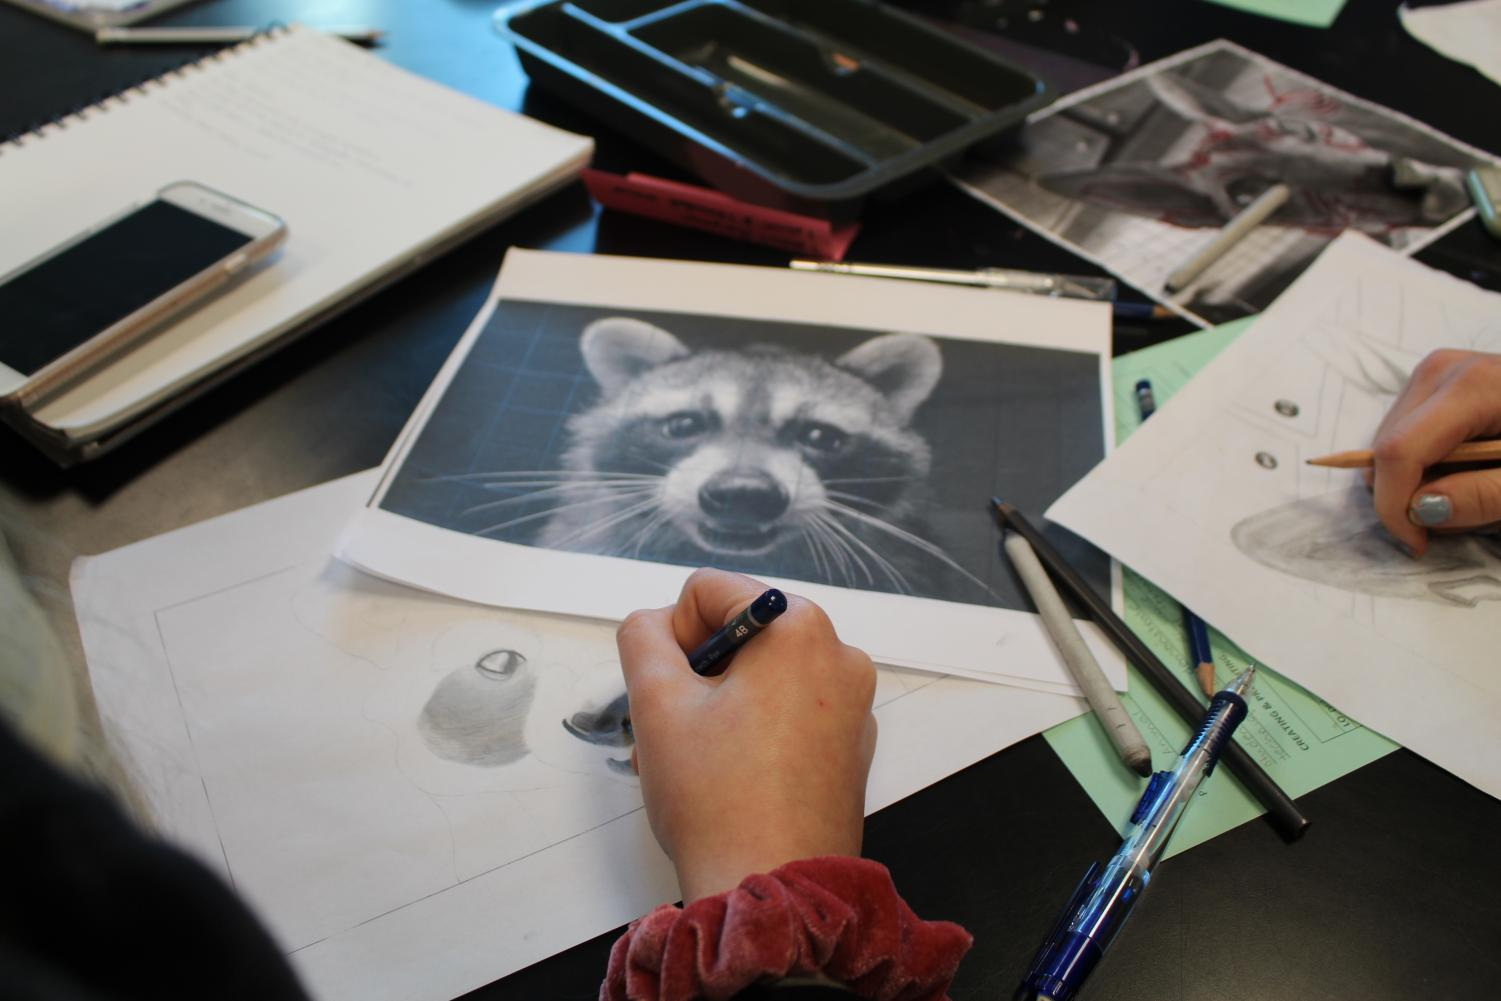 This+student+took+her+artistic+abilities+into+drawing+a+raccoon.+Art+1B+students+worked+on+recreating+animal+photos%2C+mainly+focusing+on+the+texture+within+the+photo.+